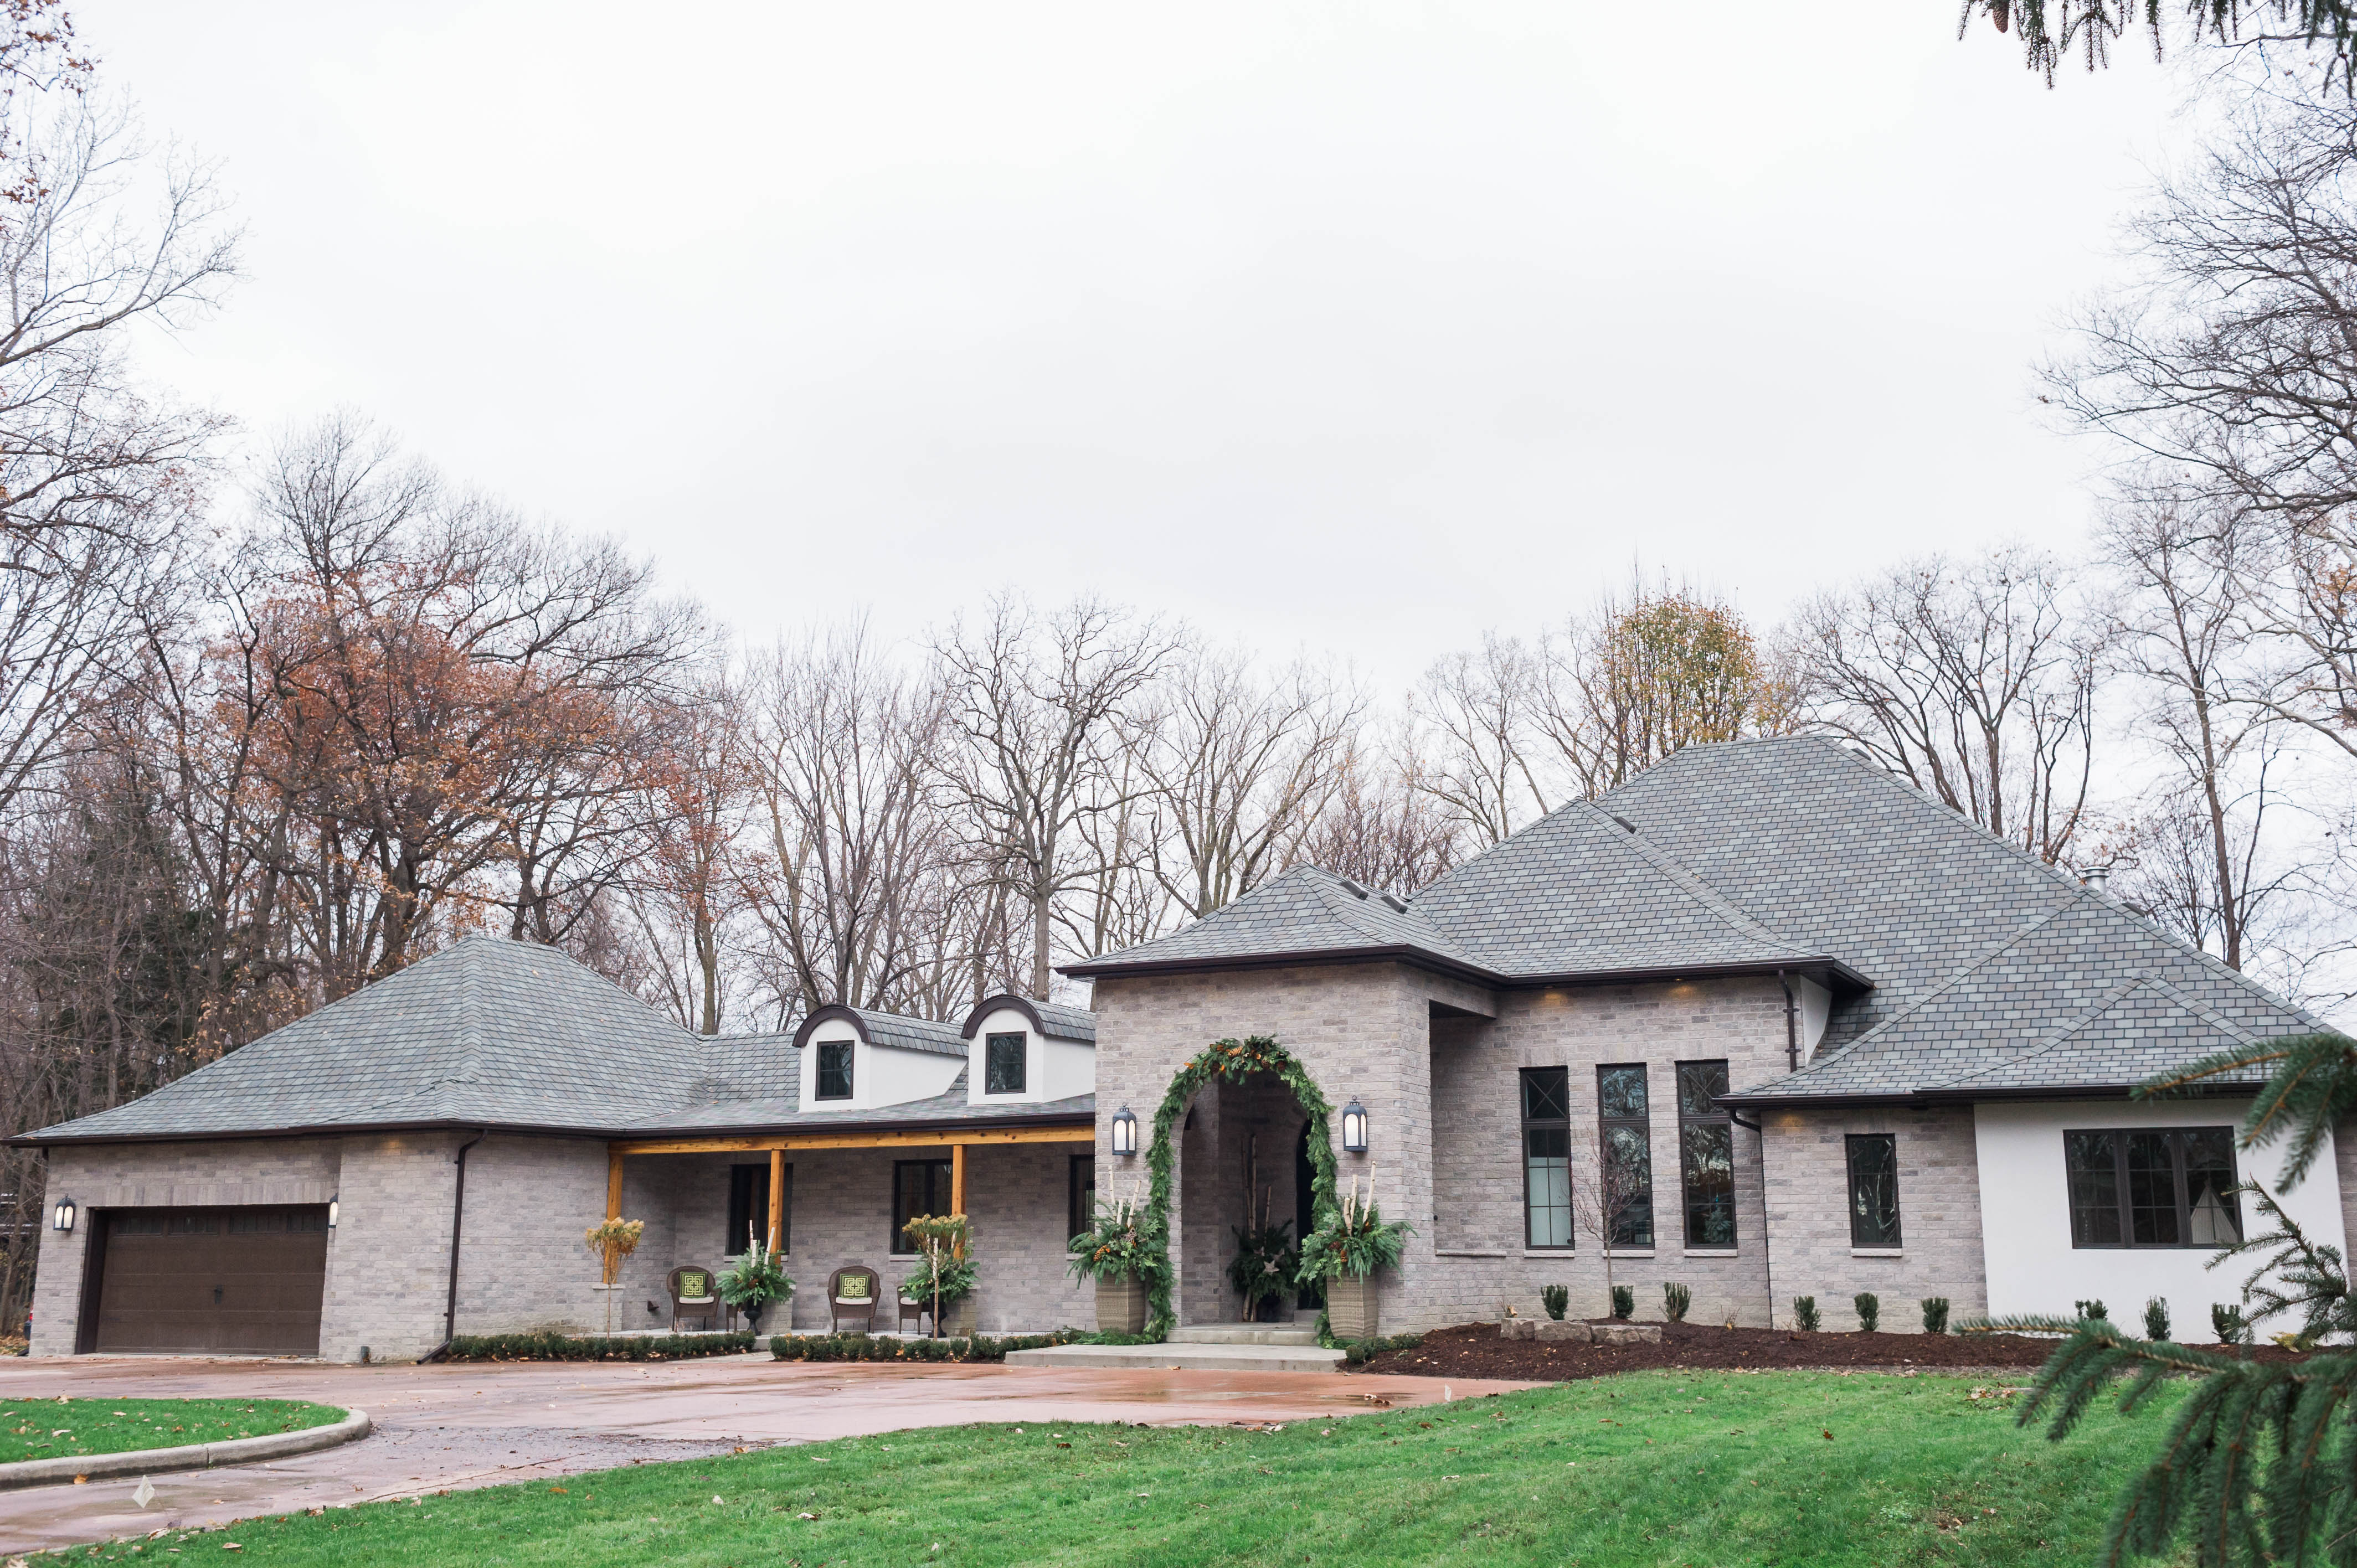 Modern French Country Exterior Renovation: Part 2 - The Leslie Style